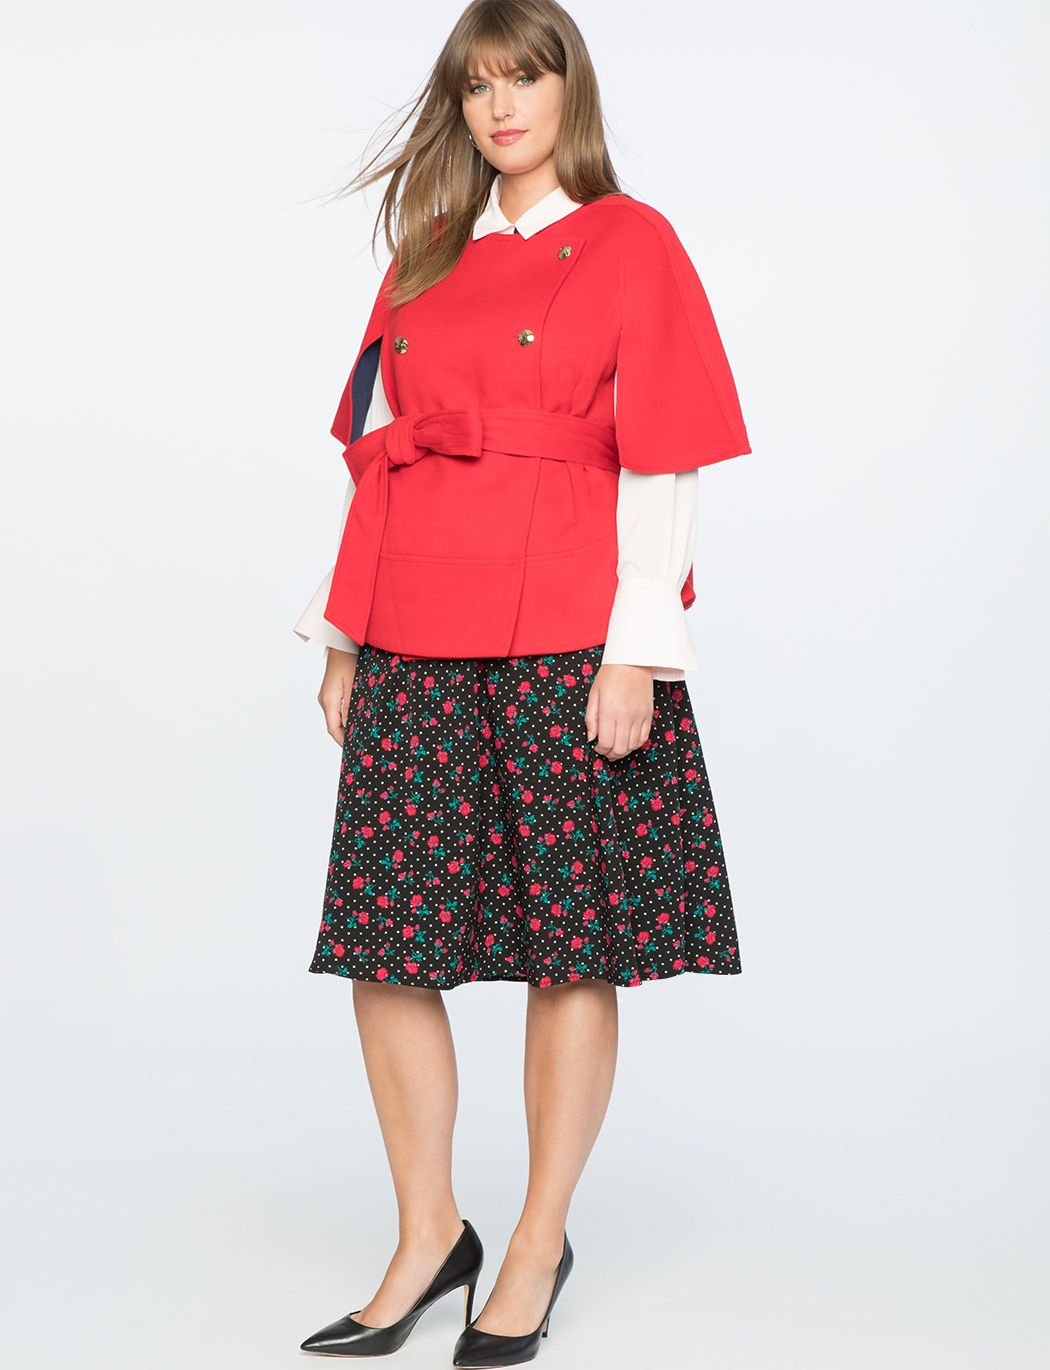 b4dc285d04625 Draper James for ELOQUII Floral Dot Skirt Forget Me Dots - Red